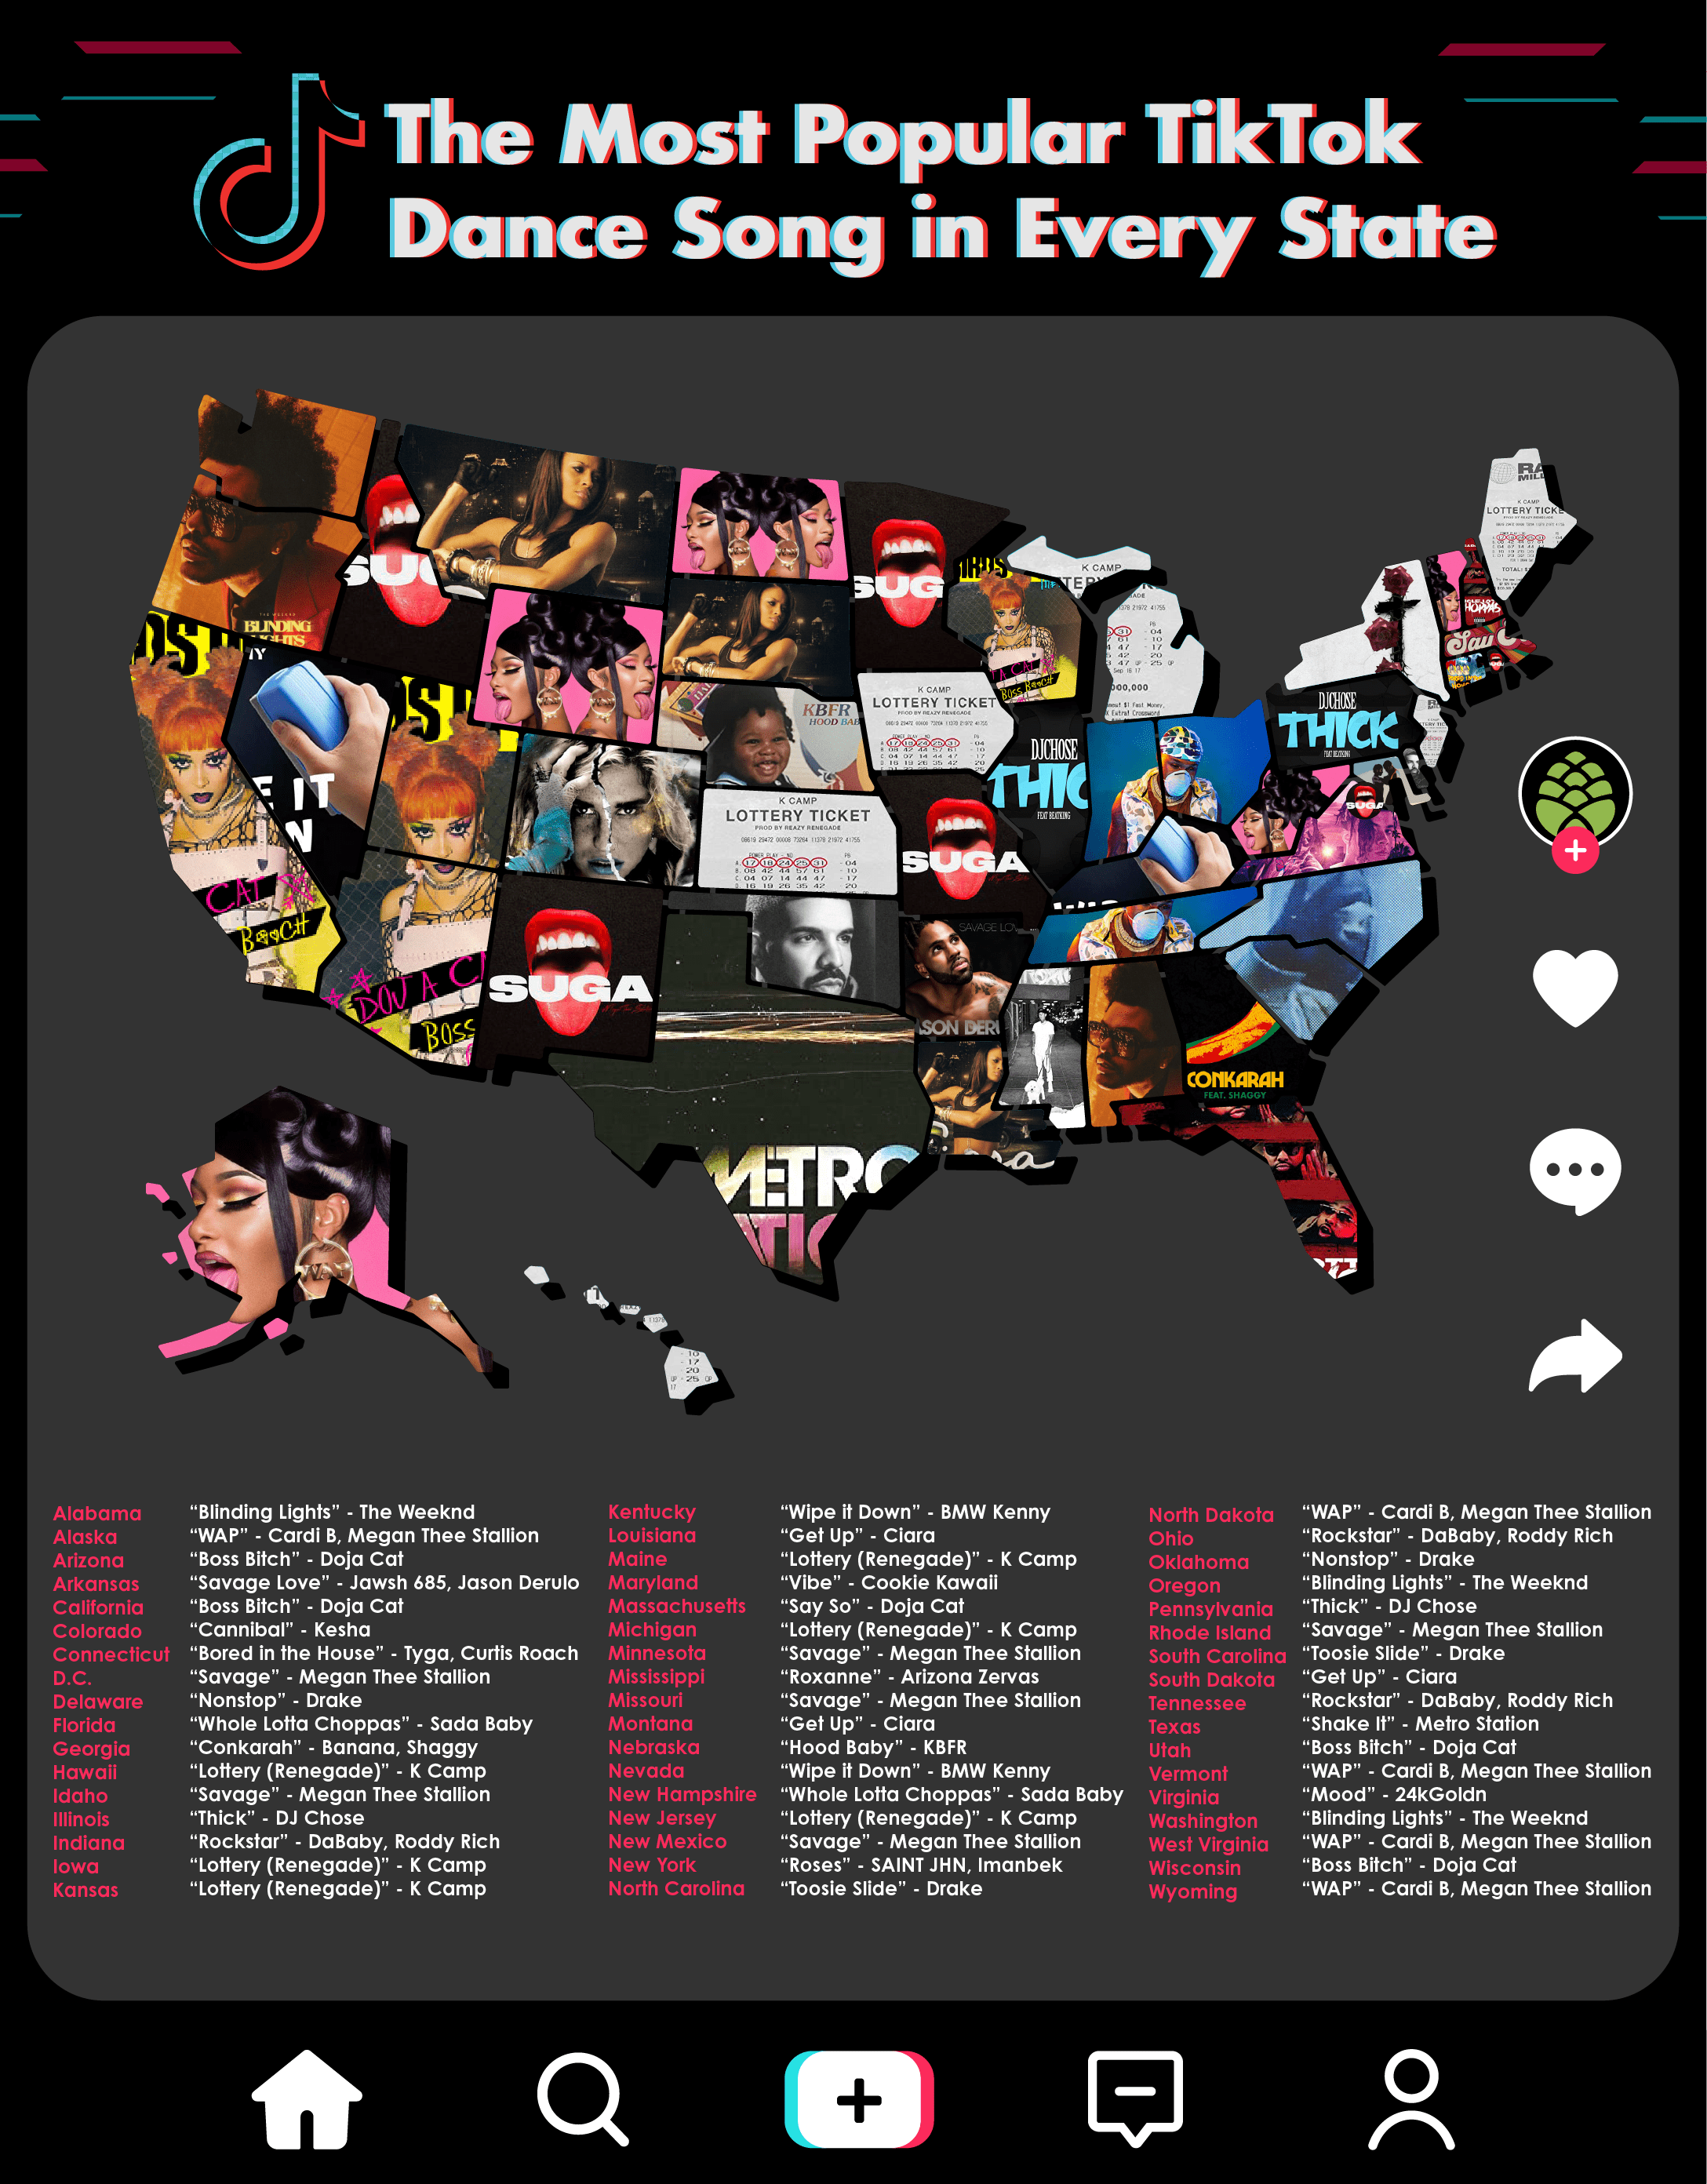 Map of the US showing the most popular TikTok dance song in every state